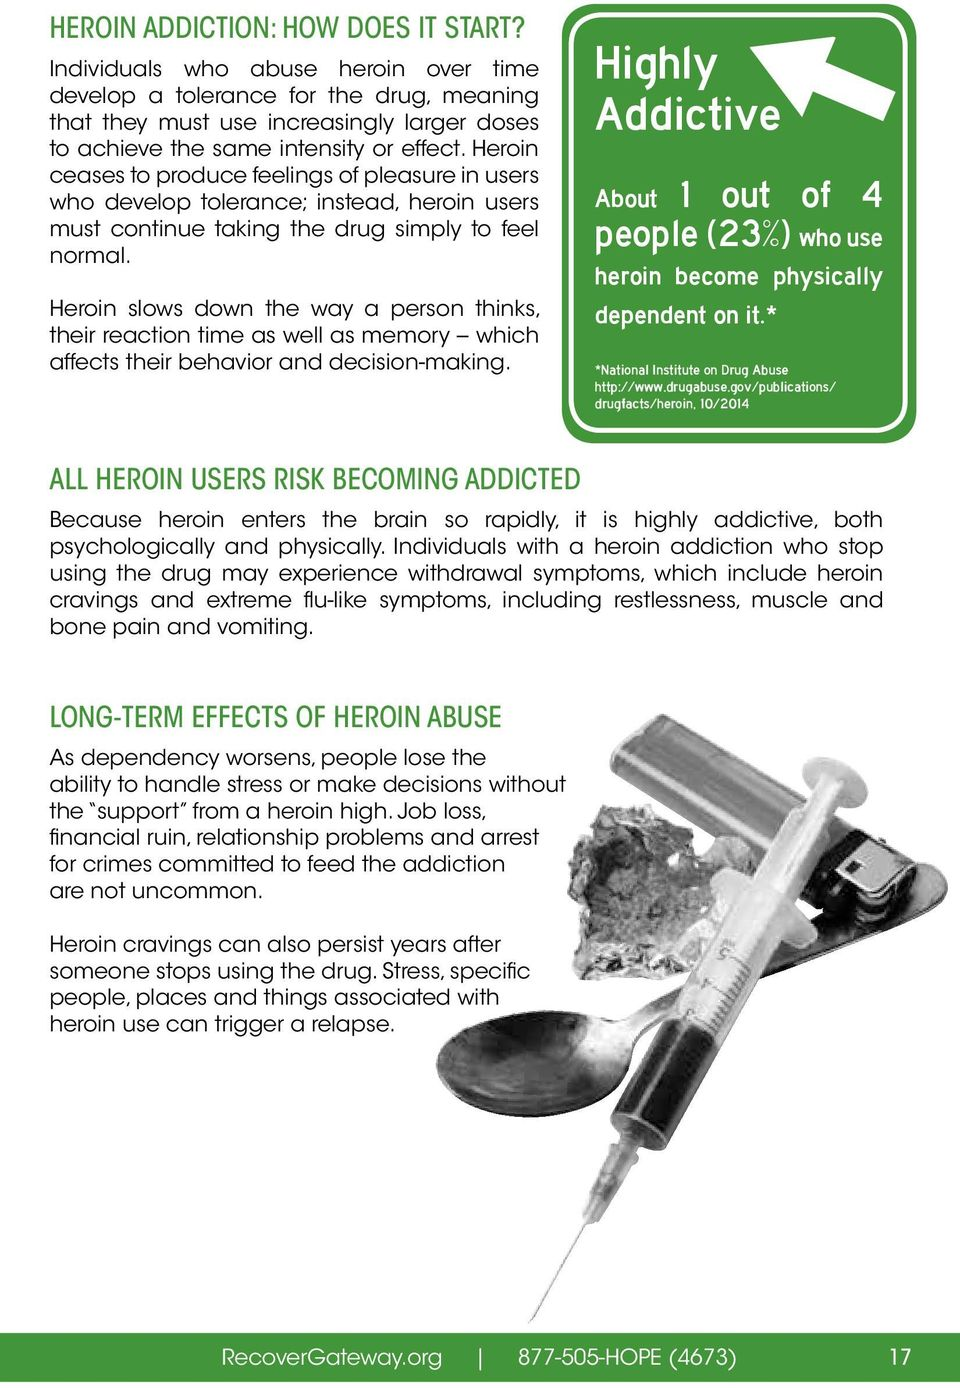 Heroin ceases to produce feelings of pleasure in users who develop tolerance; instead, heroin users must continue taking the drug simply to feel normal.